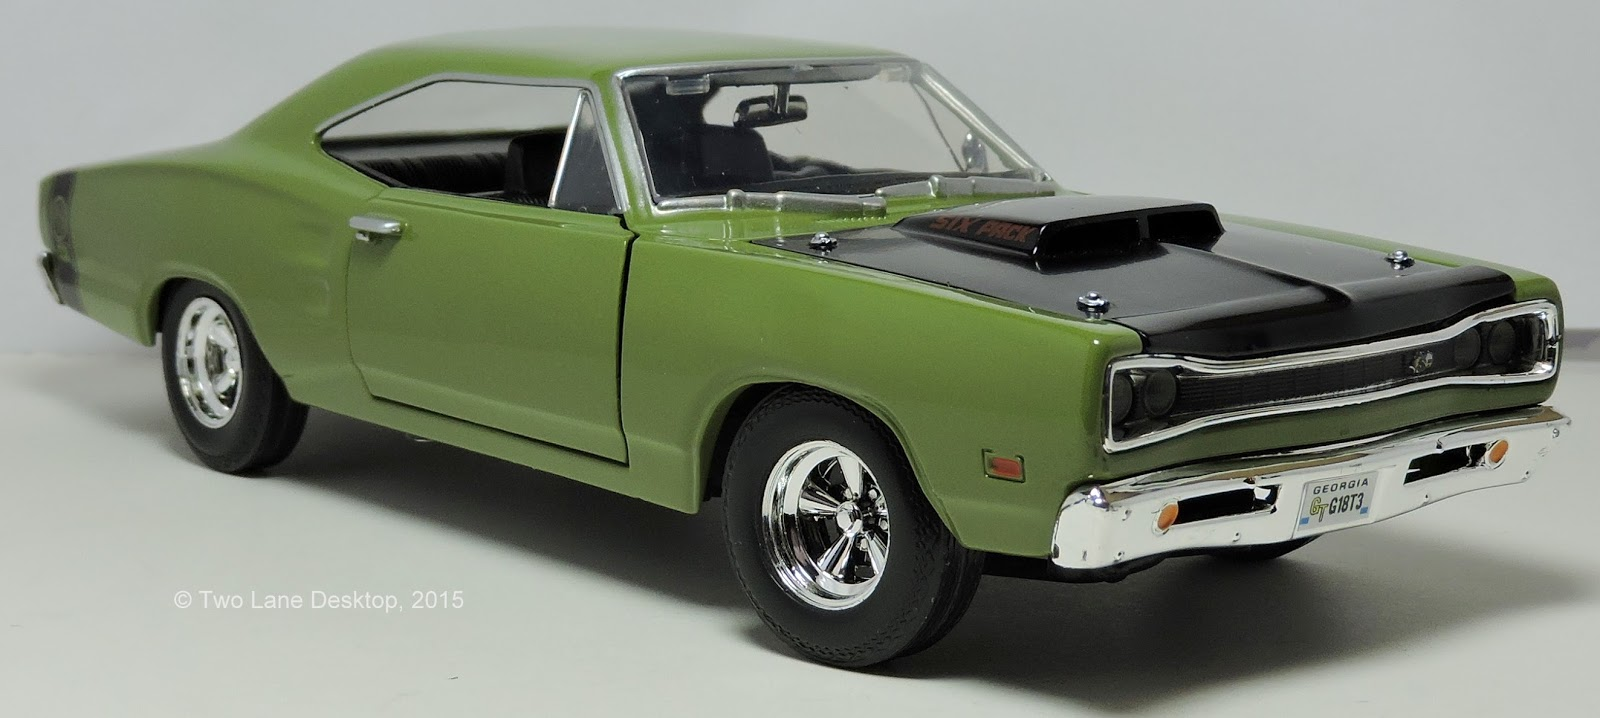 MOPAR mania, part 1: Motormax 1:24 1969 Dodge Coronet SuperBee | Two